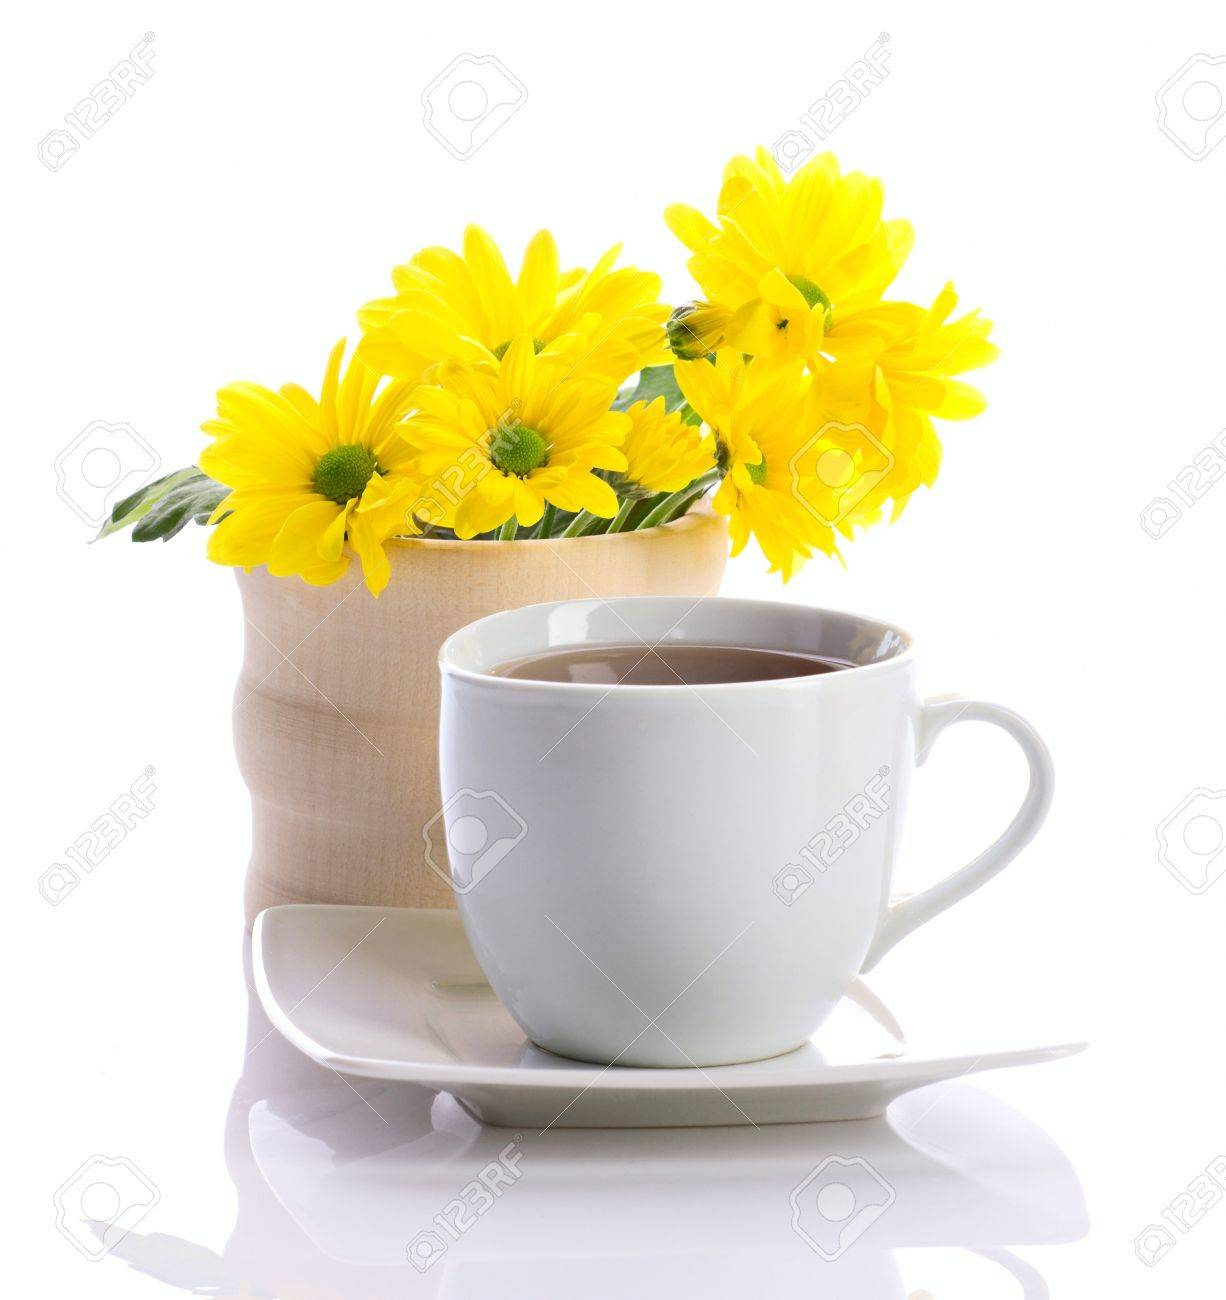 Tea In Whiite Cup And Yellow Flowers Isolated On White Stock Photo